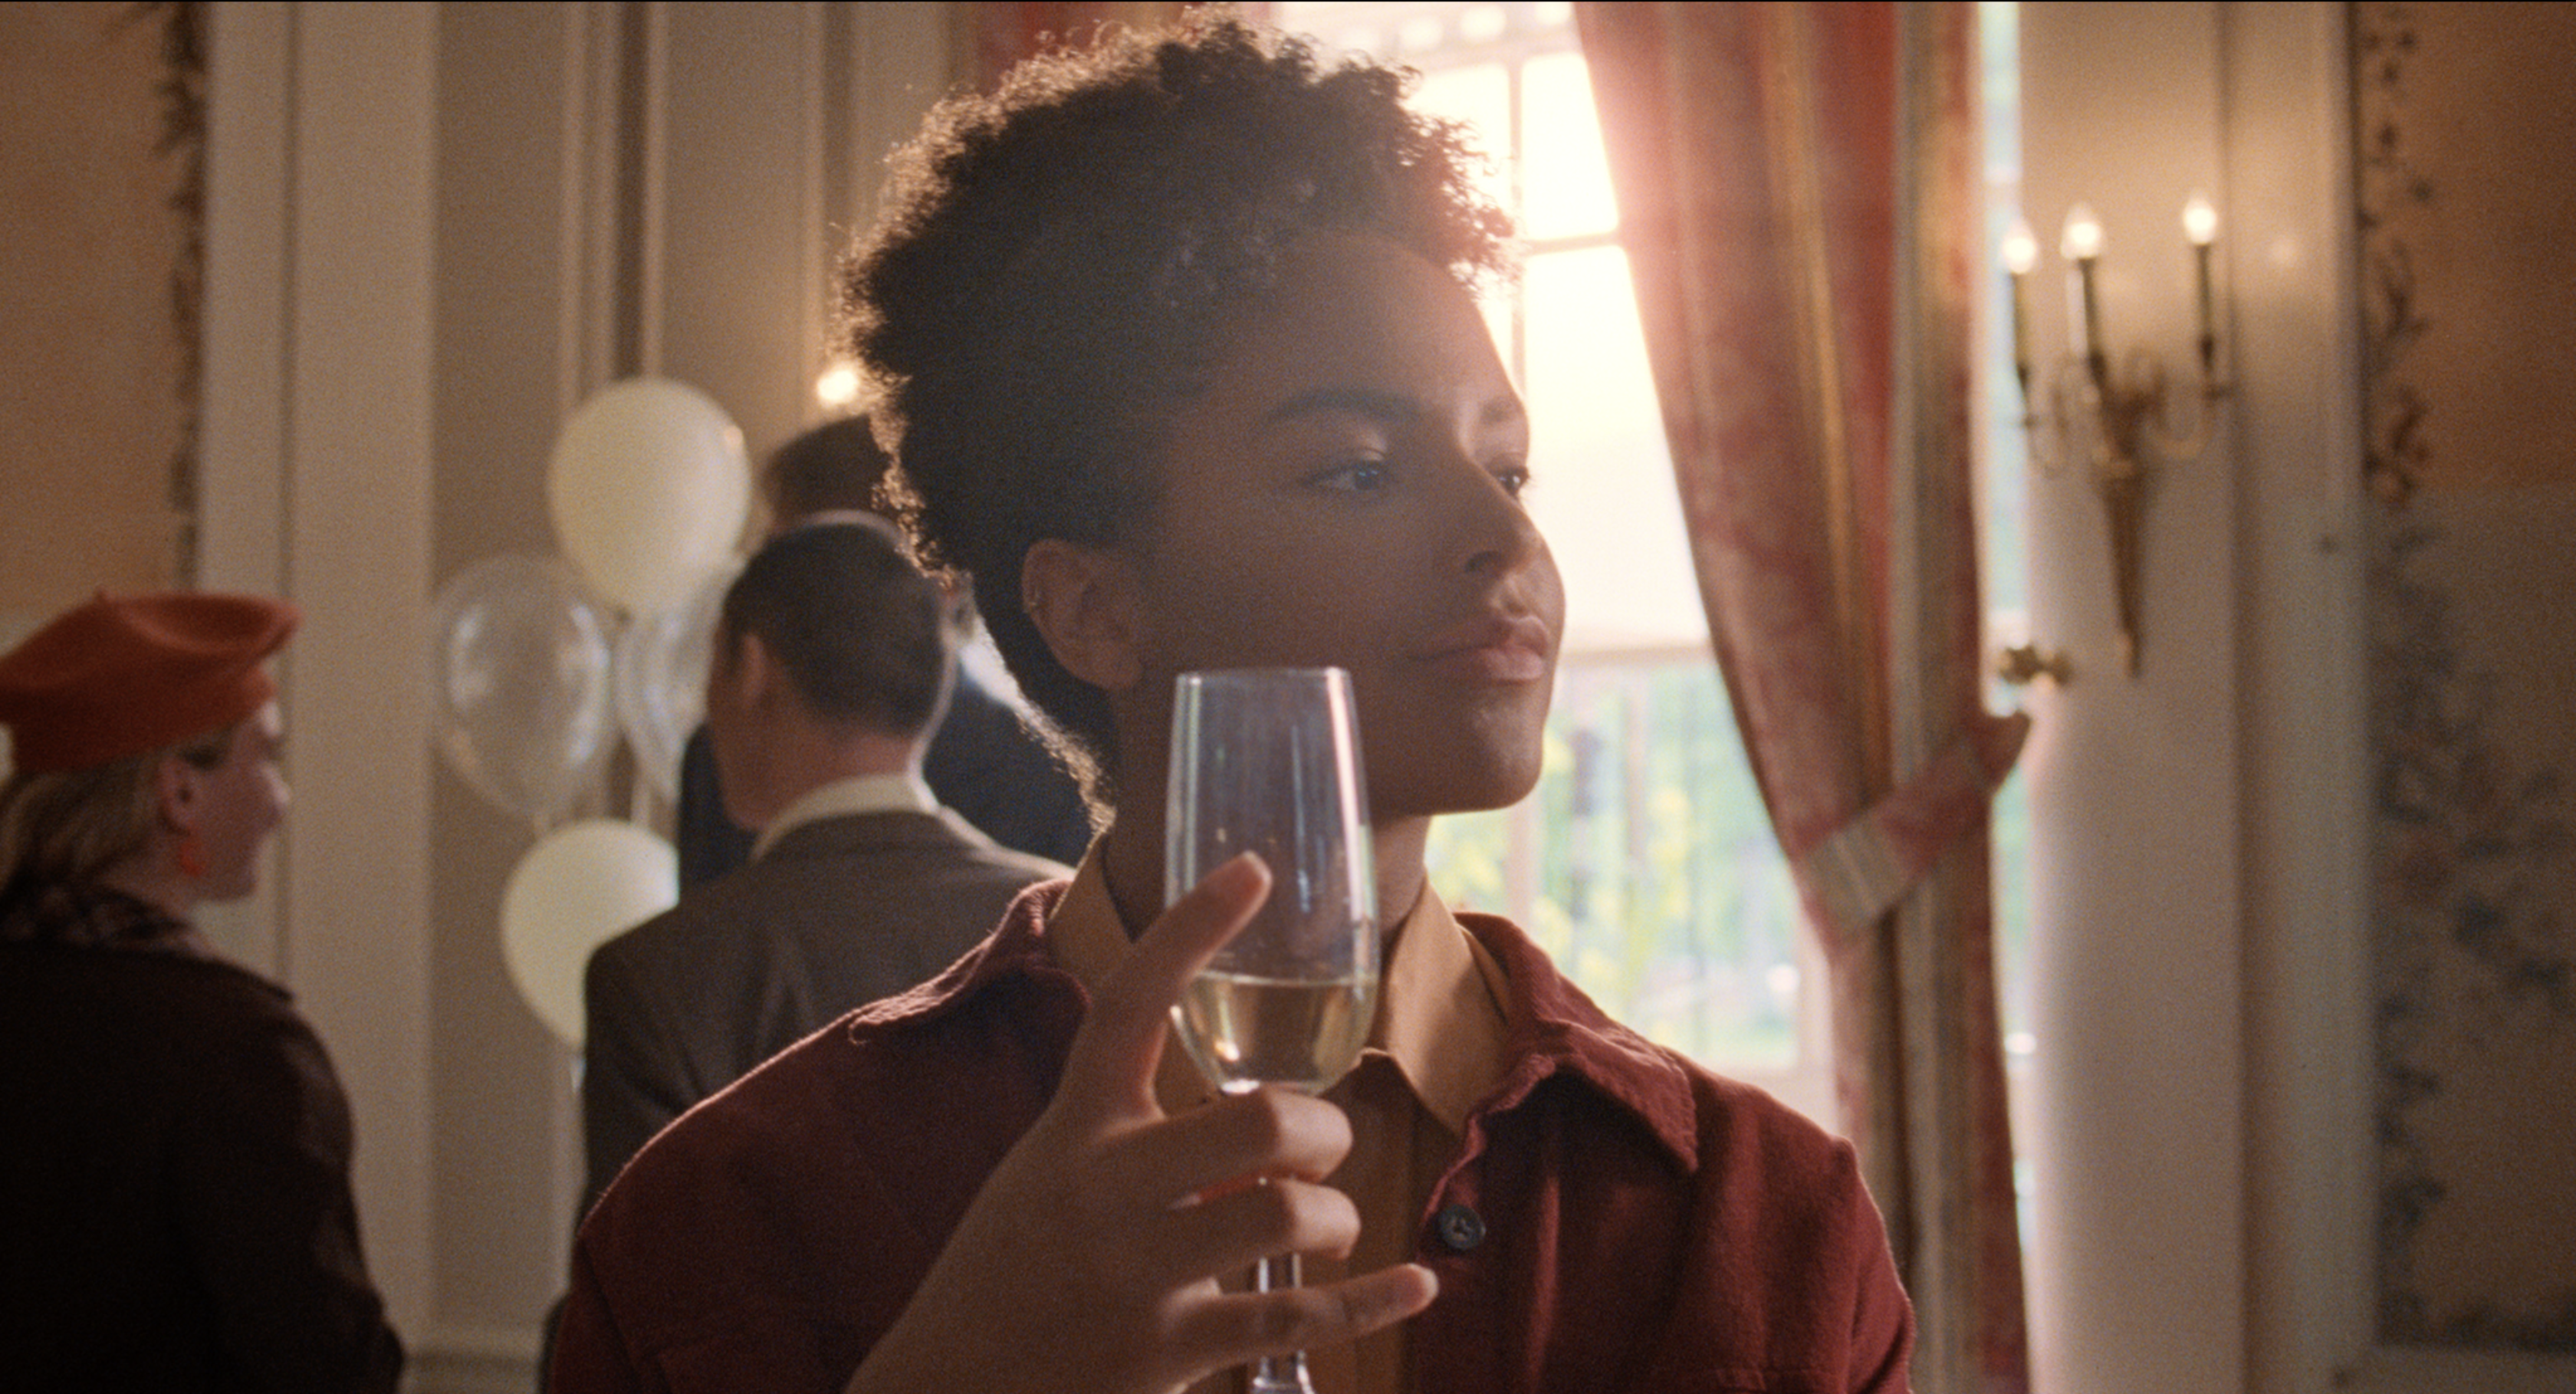 Still from the commercial For You. It's a close up of Eden looking off screen. They have a glass of champagne in their hand.